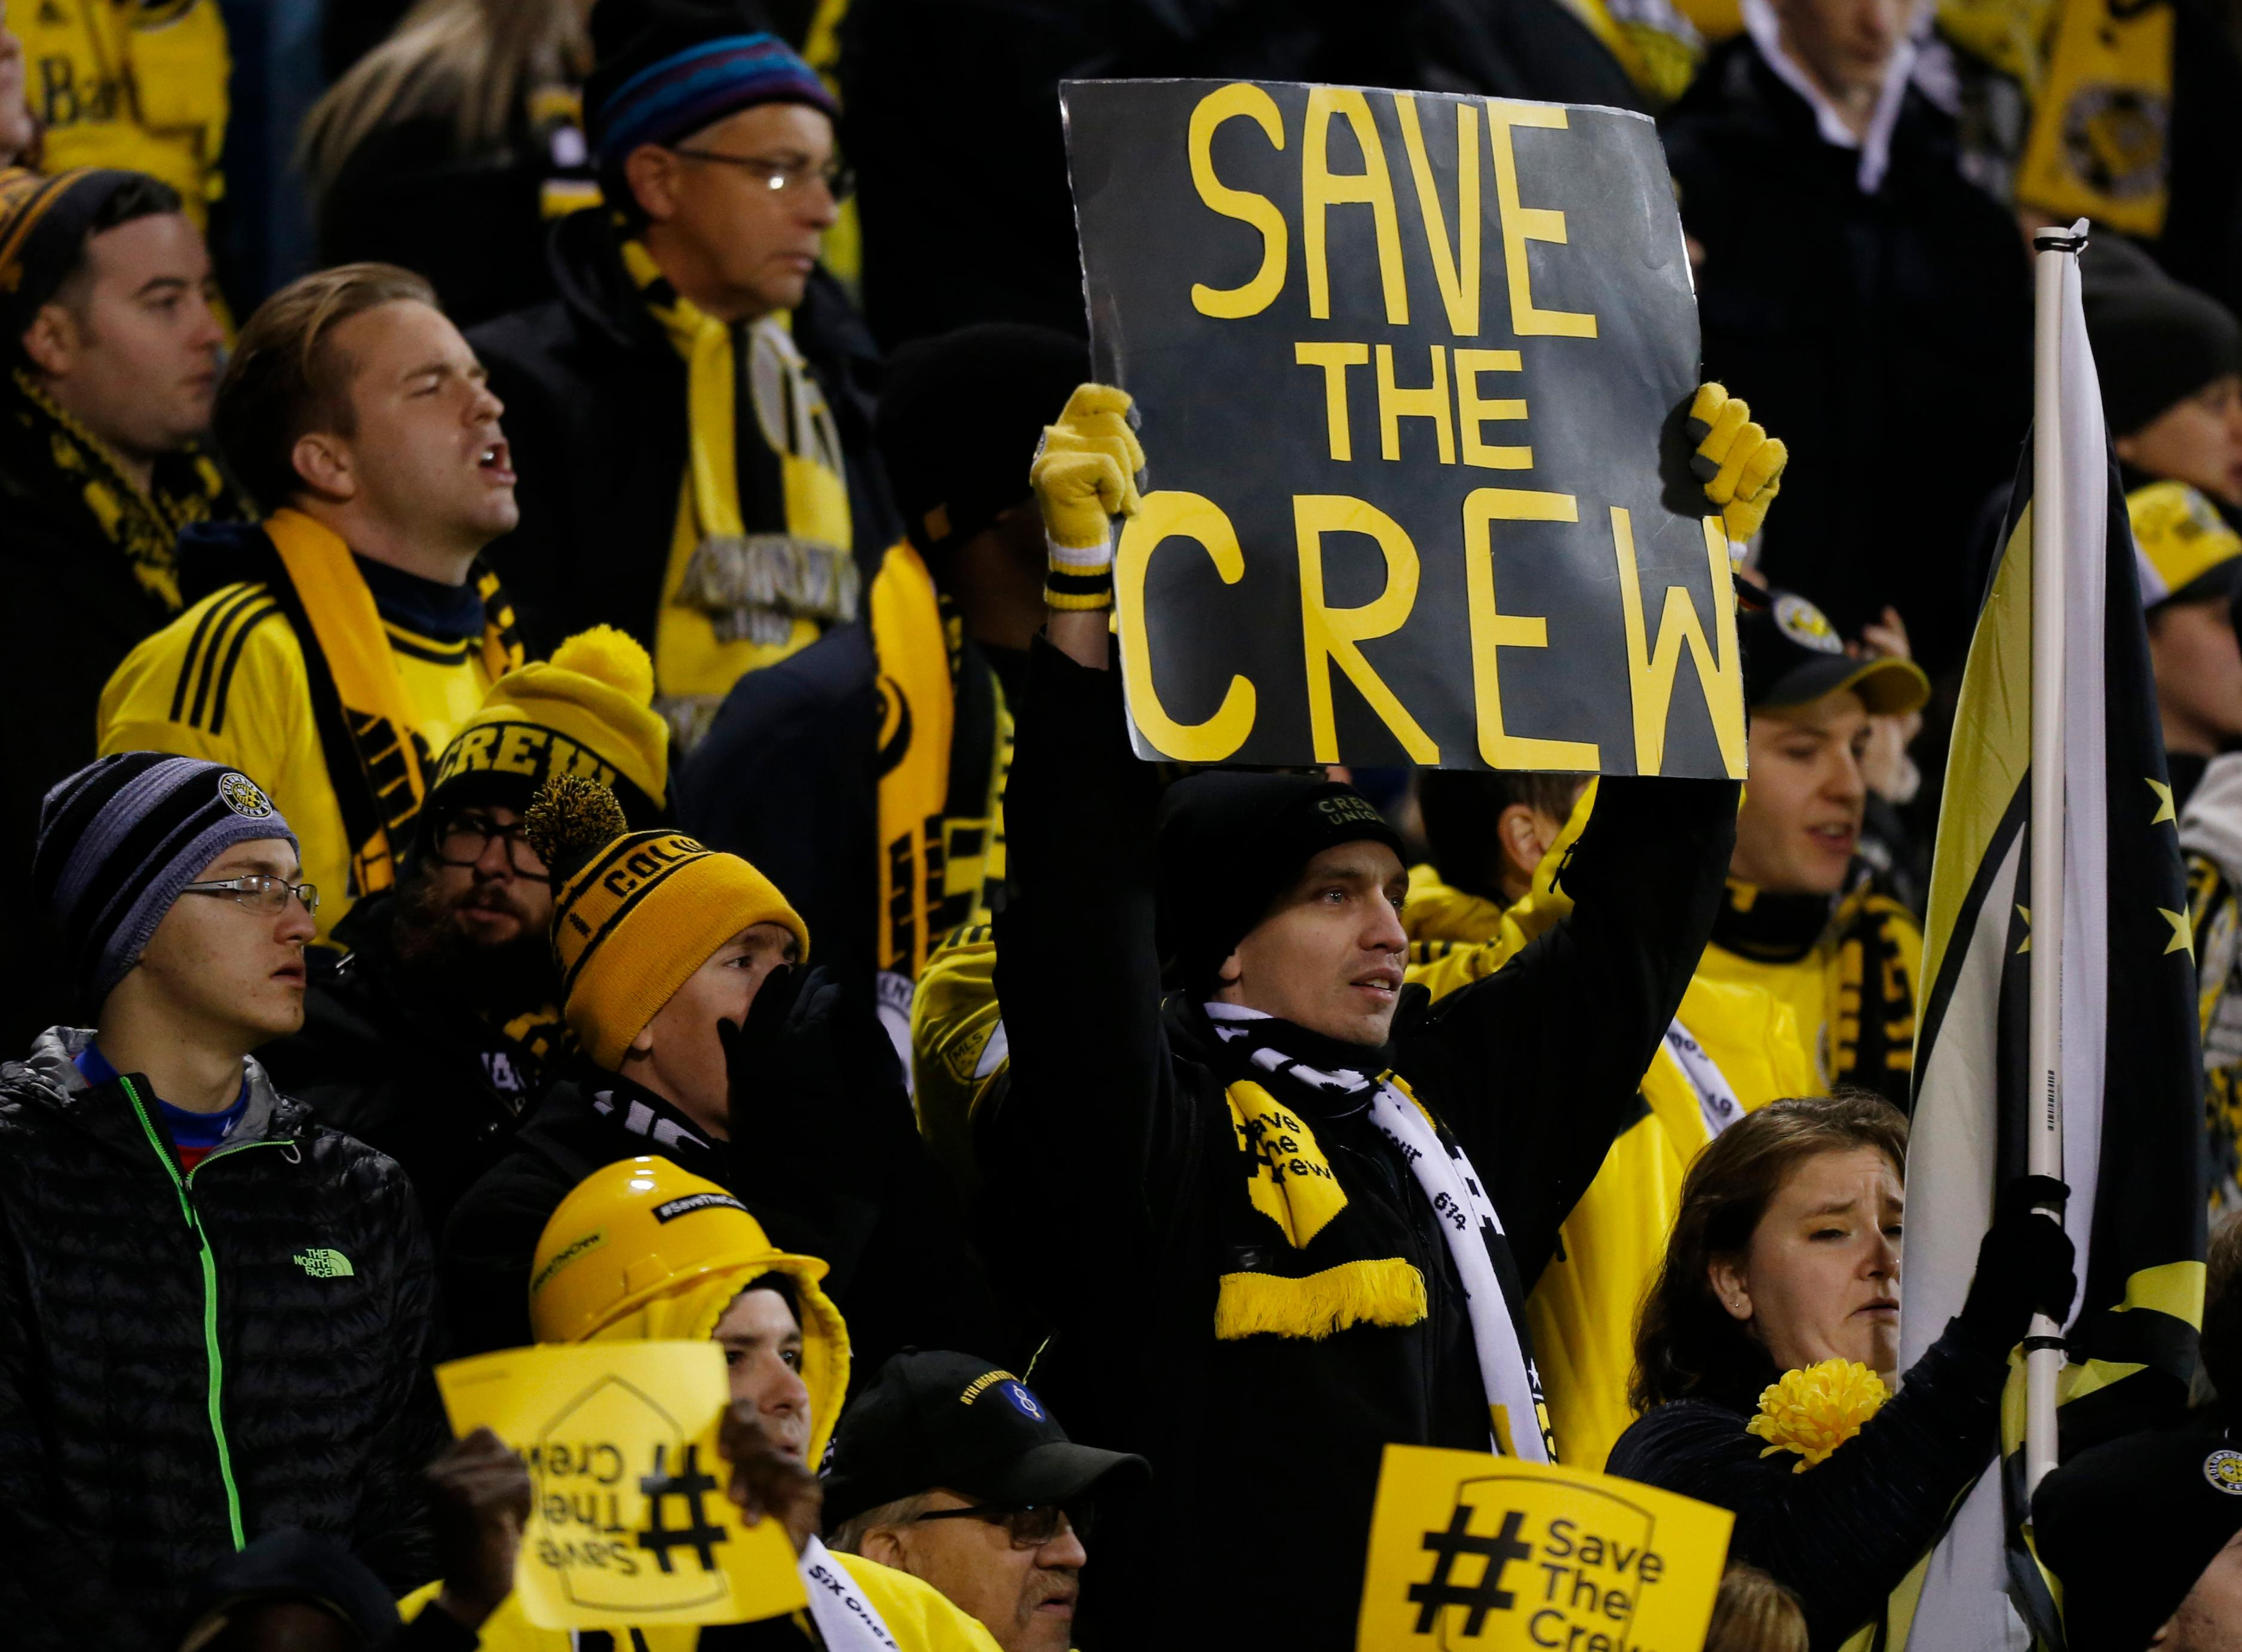 Columbus Crew fans show their support for their team as they play against Toronto FC during the first half of an MLS Eastern Conference championship soccer match Tuesday, Nov. 21, 2017, in Columbus, Ohio. The Crew's owner has recently threatened to move the team after the 2018 season. (AP Photo/Jay LaPrete)